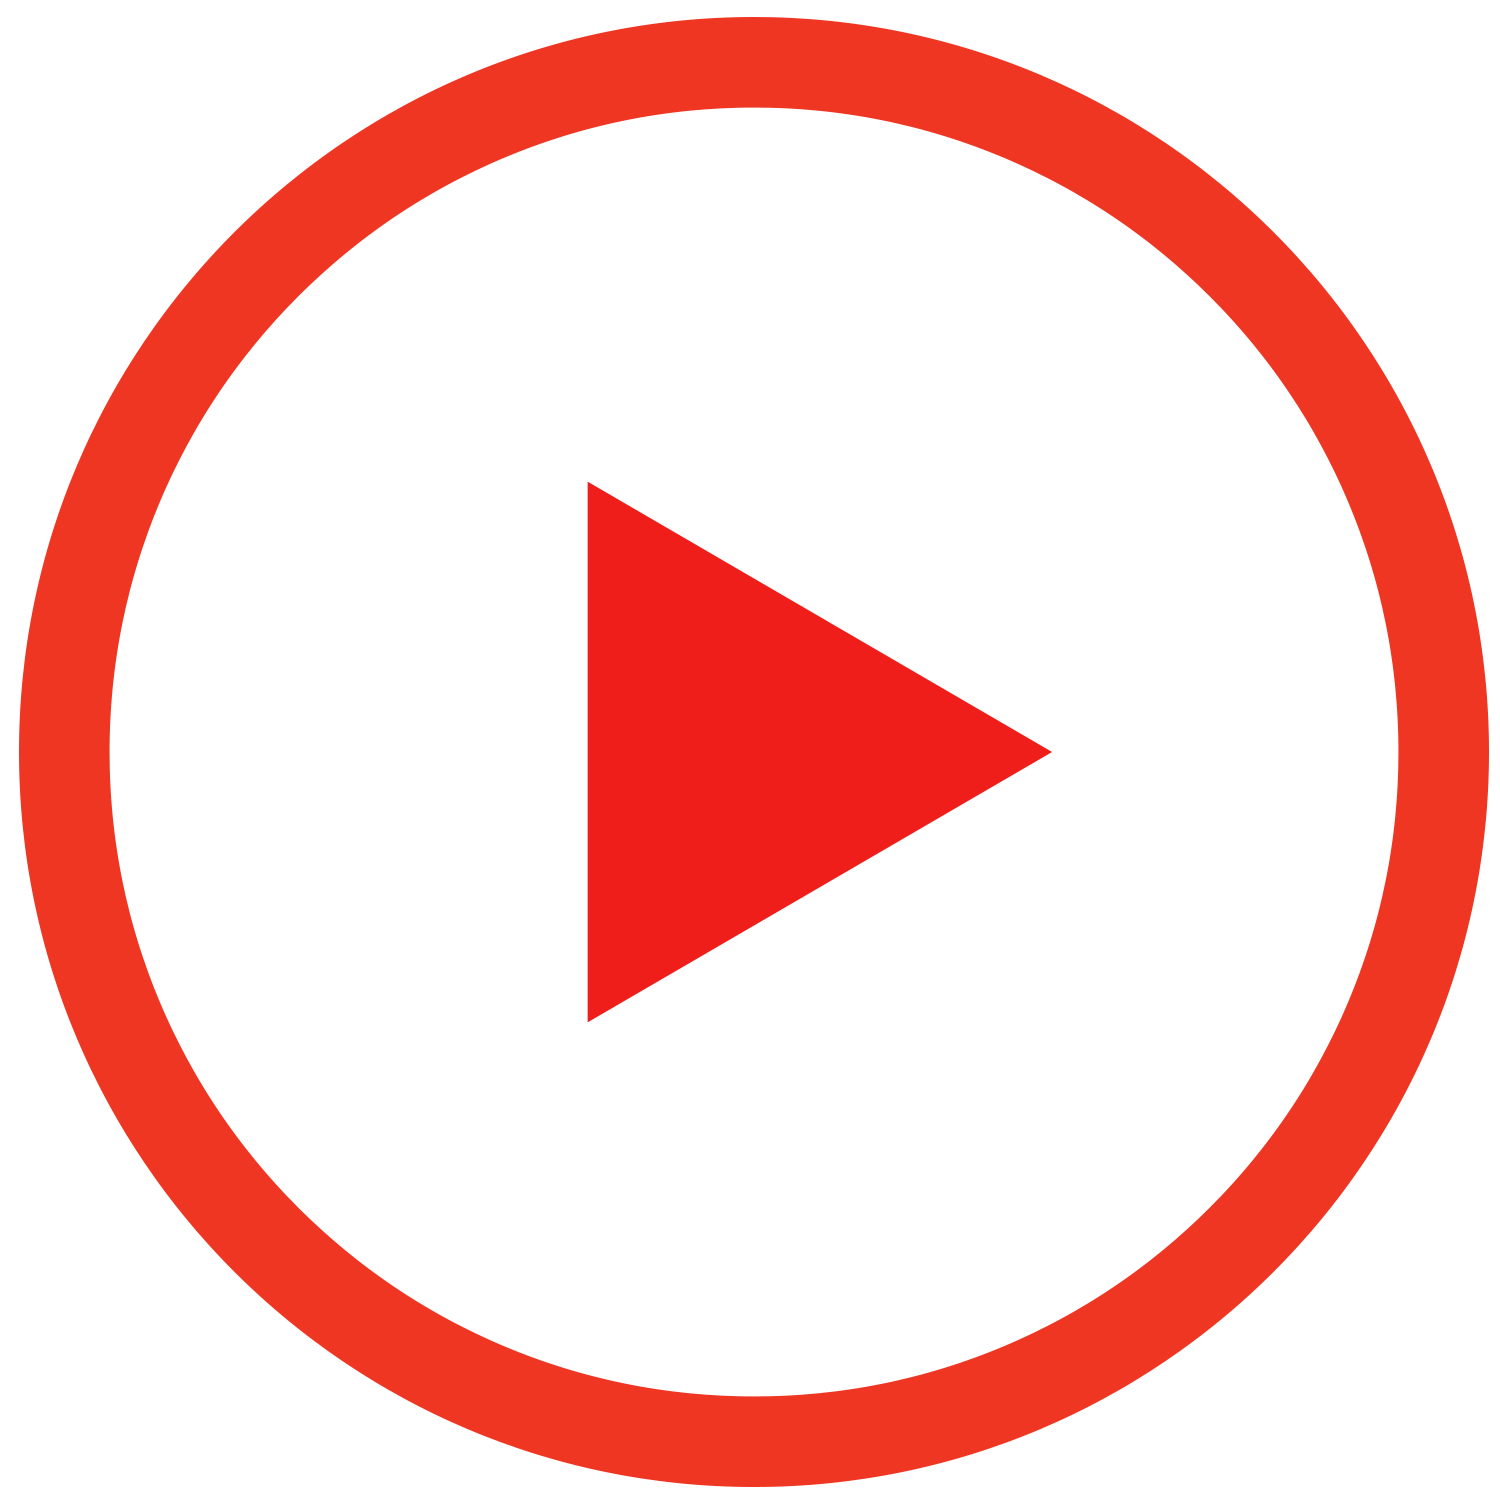 Play Red Outline Button transparent PNG.